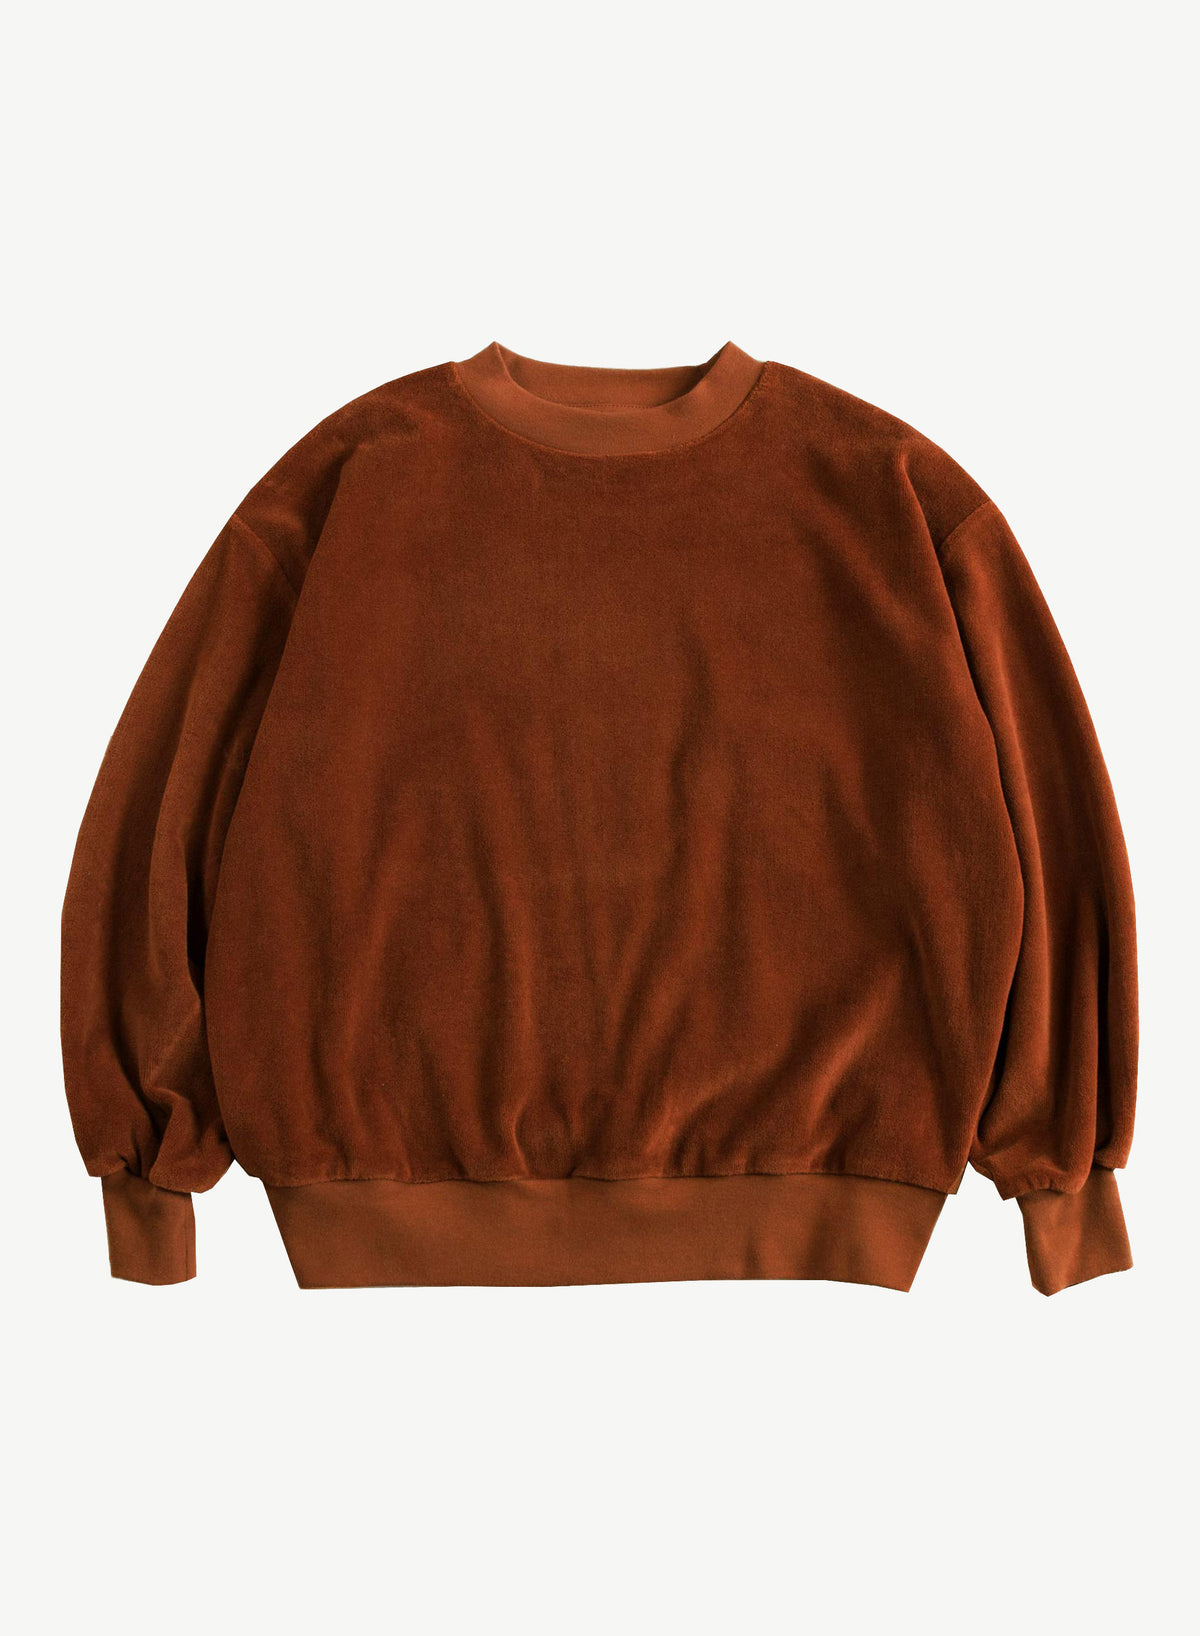 Caramel Balloon Sweatshirt